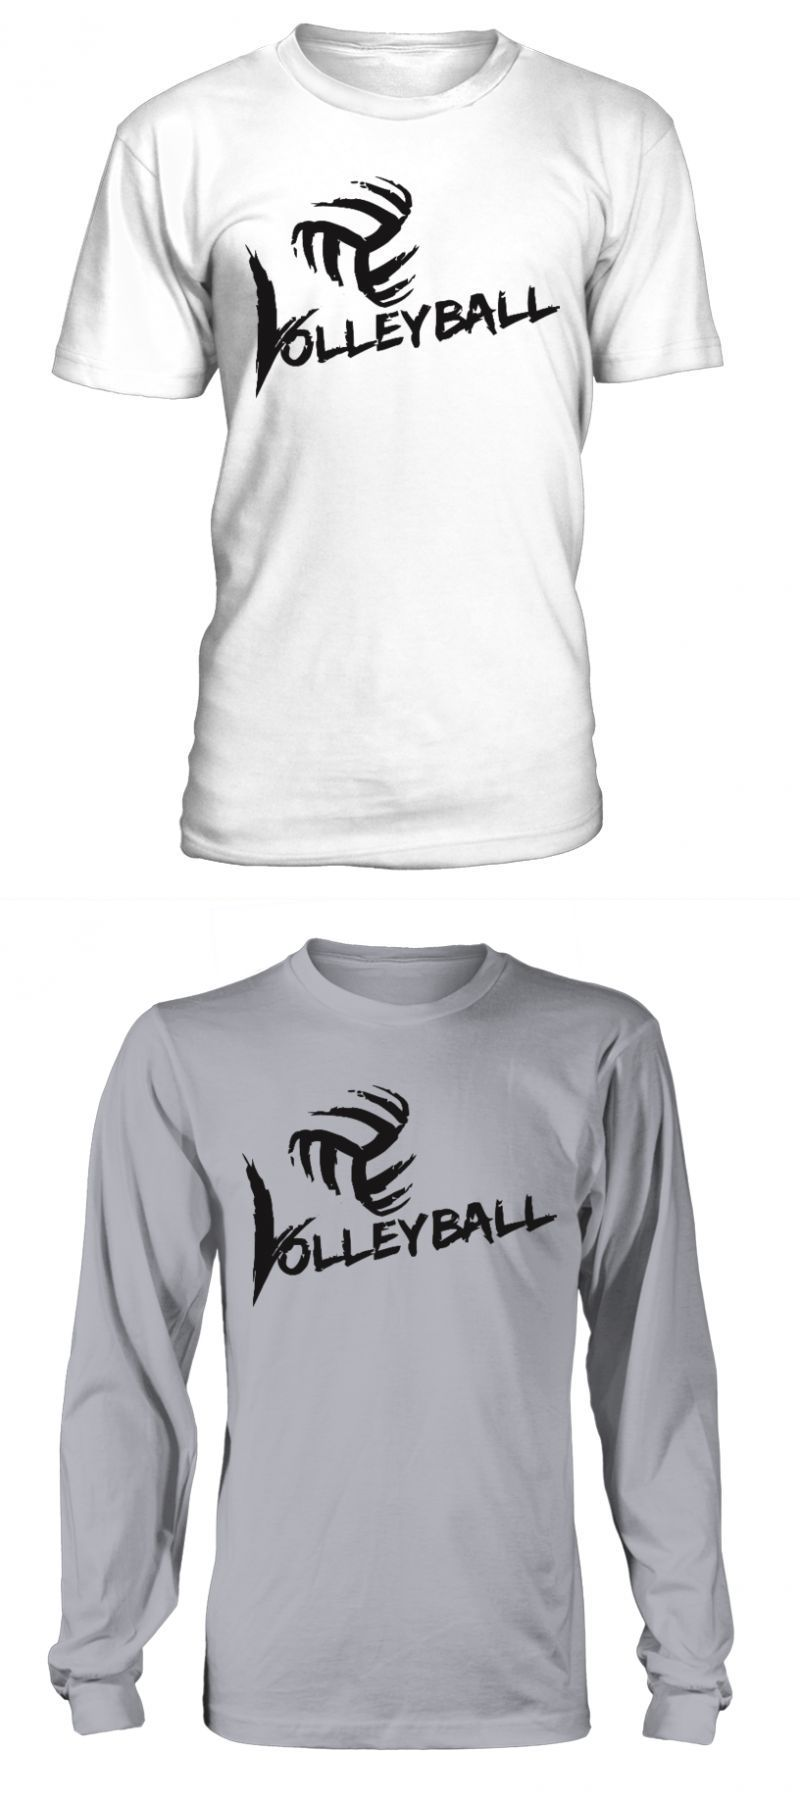 T Shirt Design Ideas Volleyball Volleyball Heartbeat Ltd Edition Byu Volleyball T Shirt Shirt Design Long Sleeve Tshirt Men Volleyball Tshirts Shirt Designs